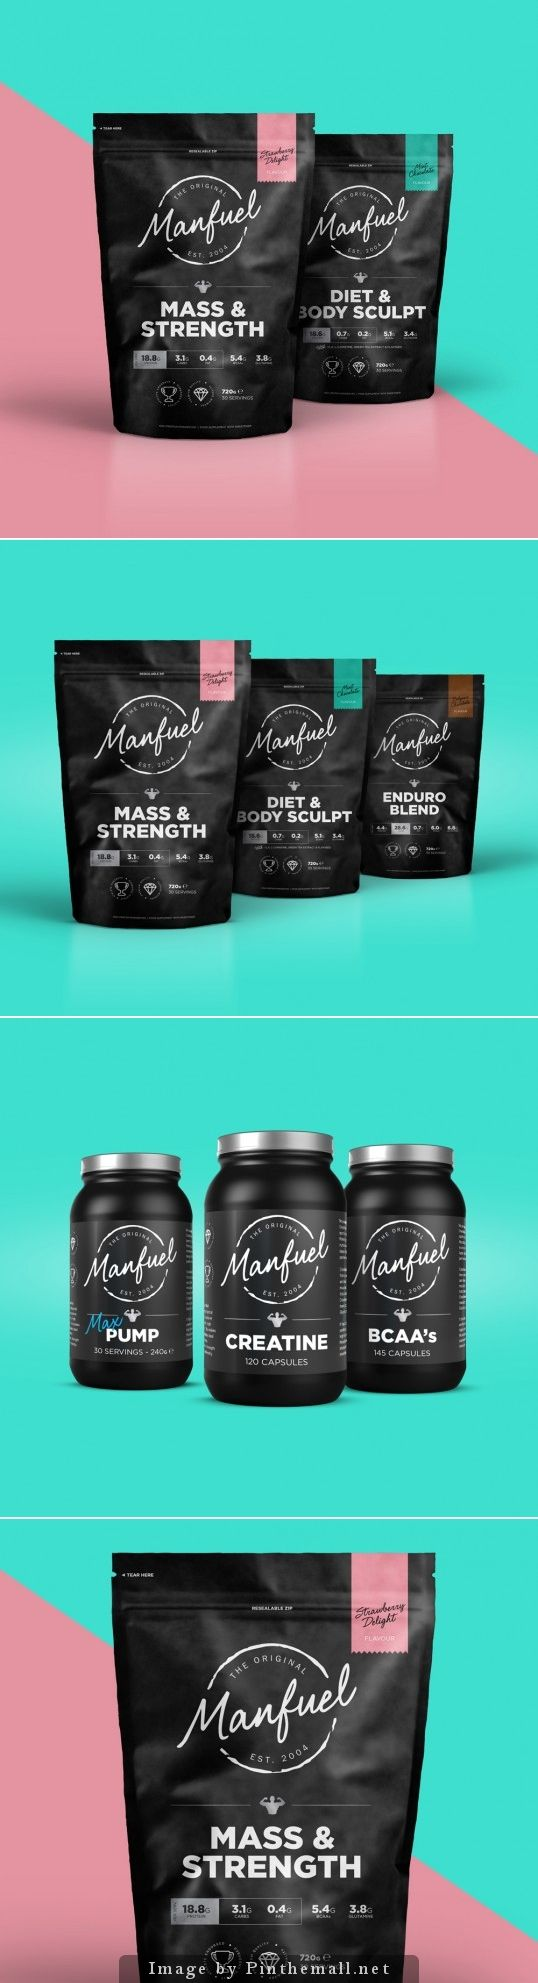 Supplement packaging that isn't awful  http://lovelypackage.com/manfuel/